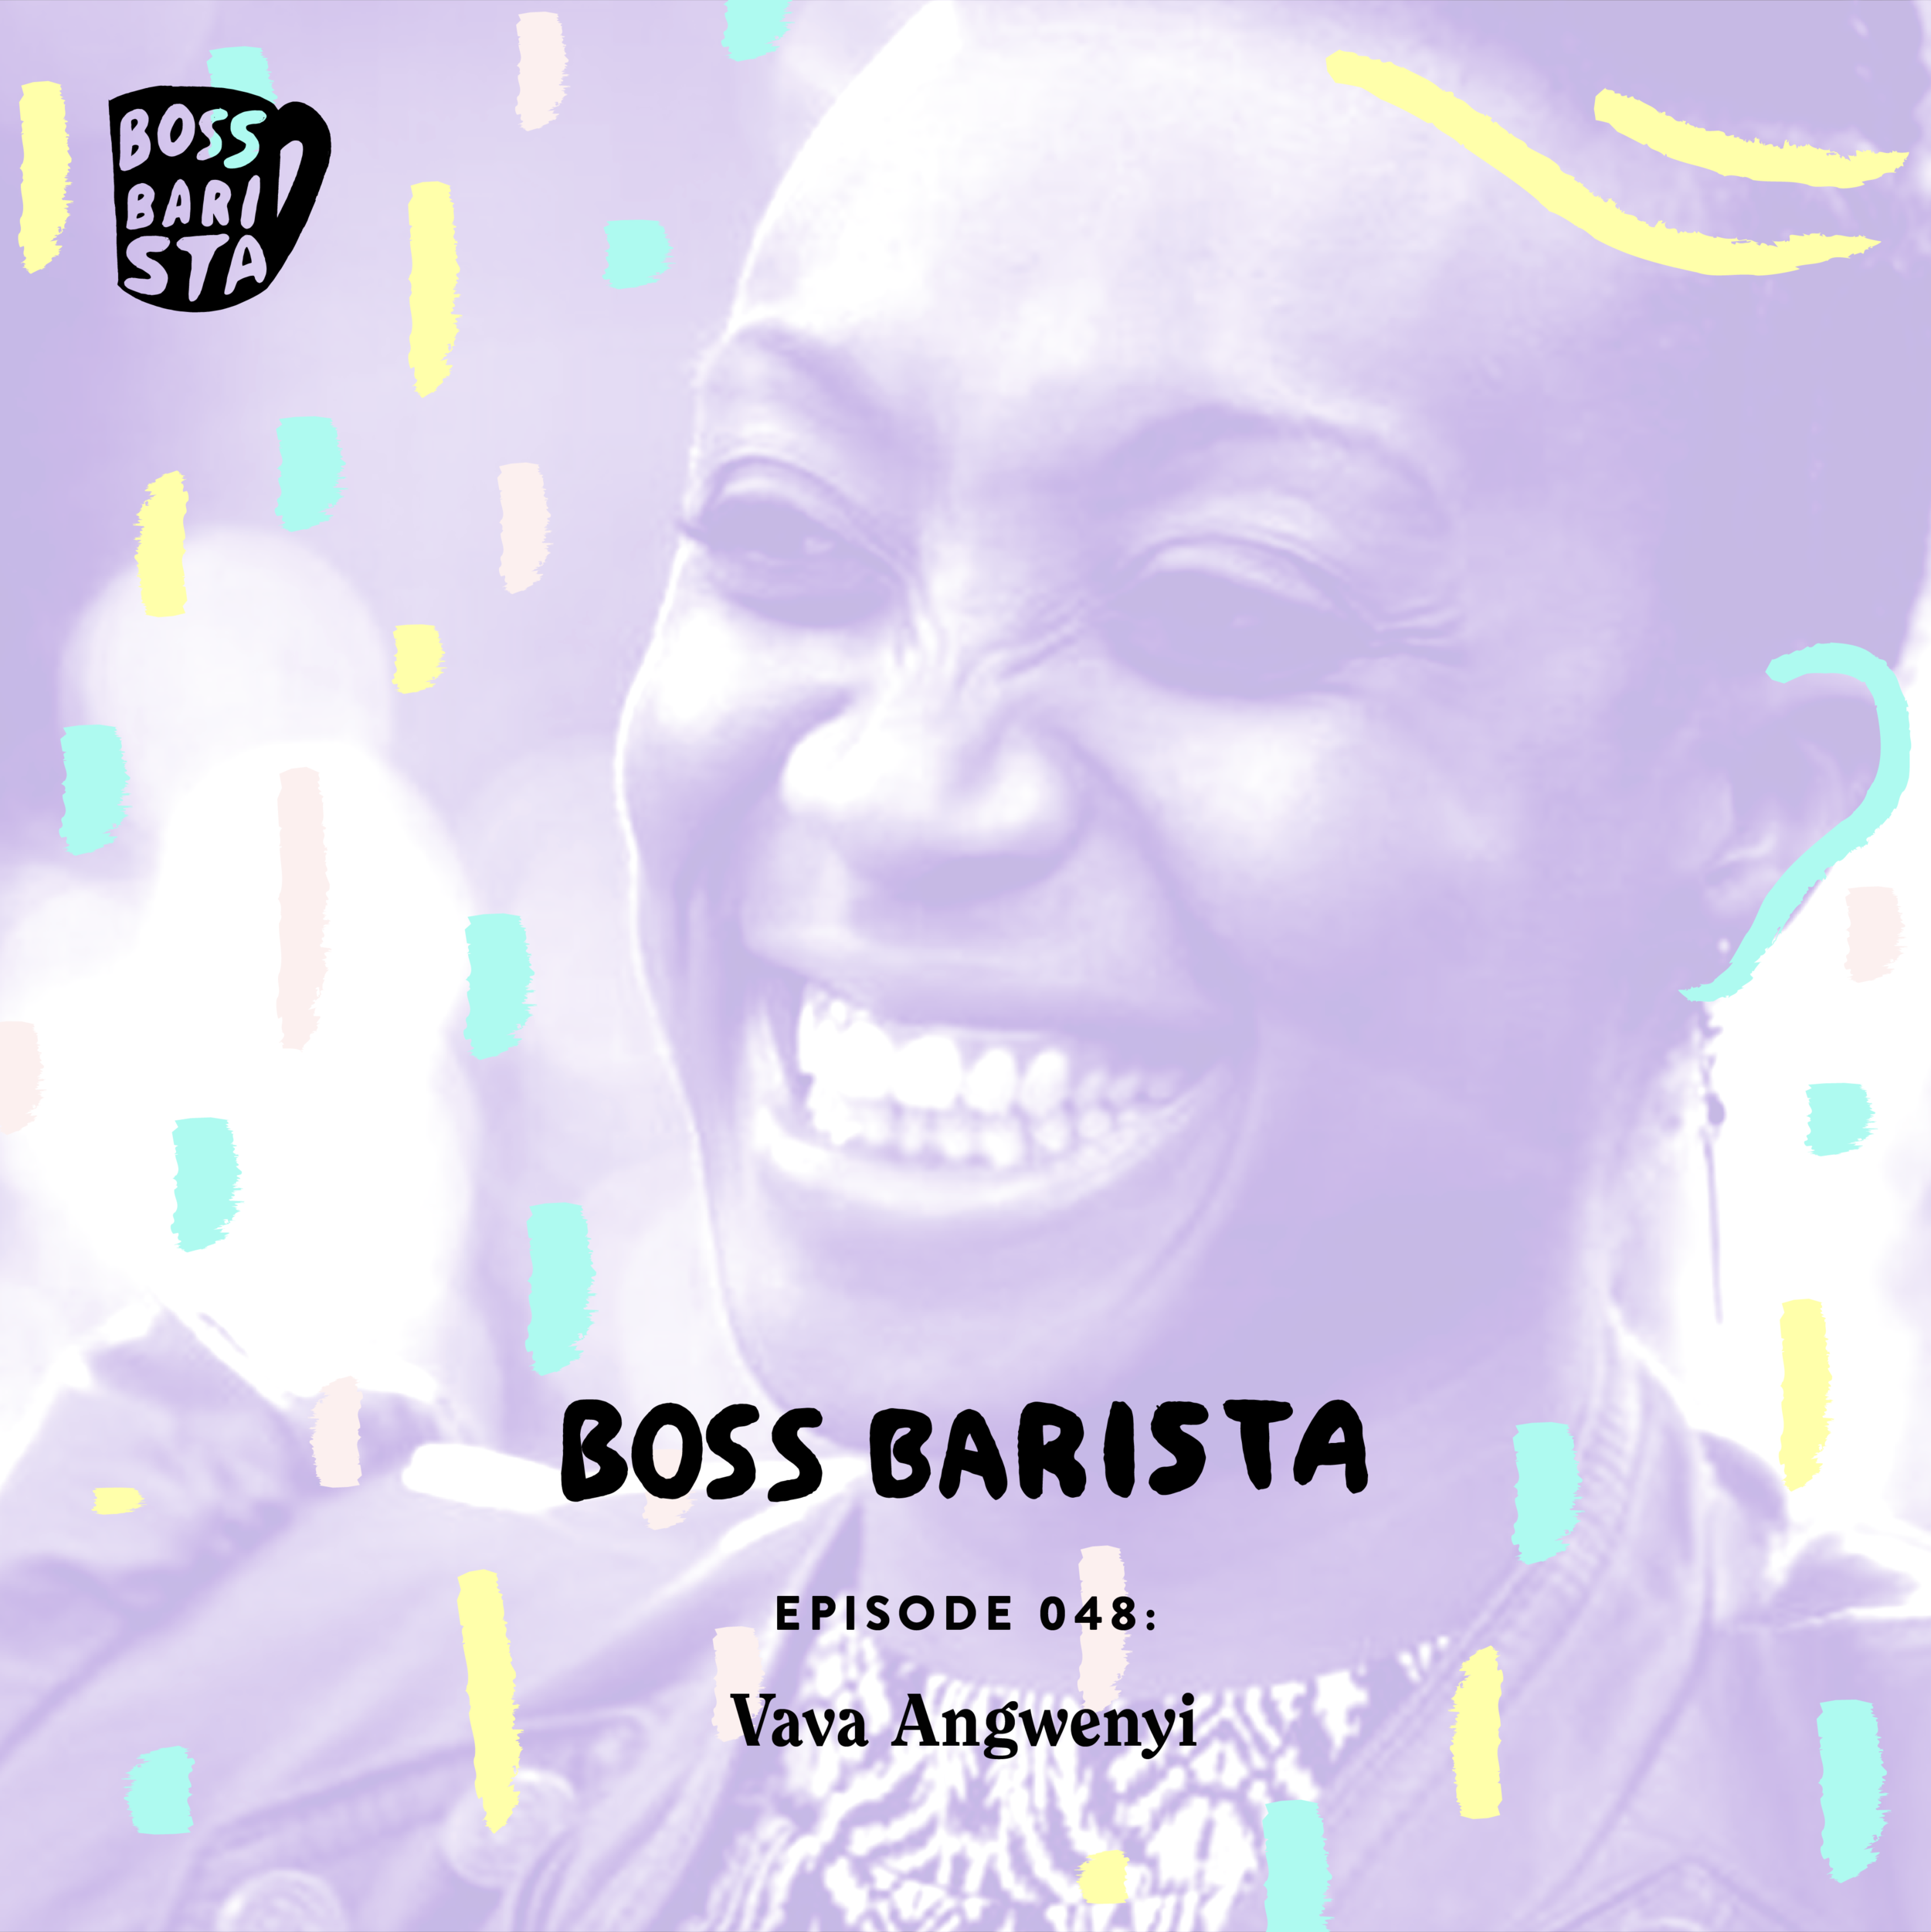 Boss_Barista_048_Cover_EPISODE_COVER.png